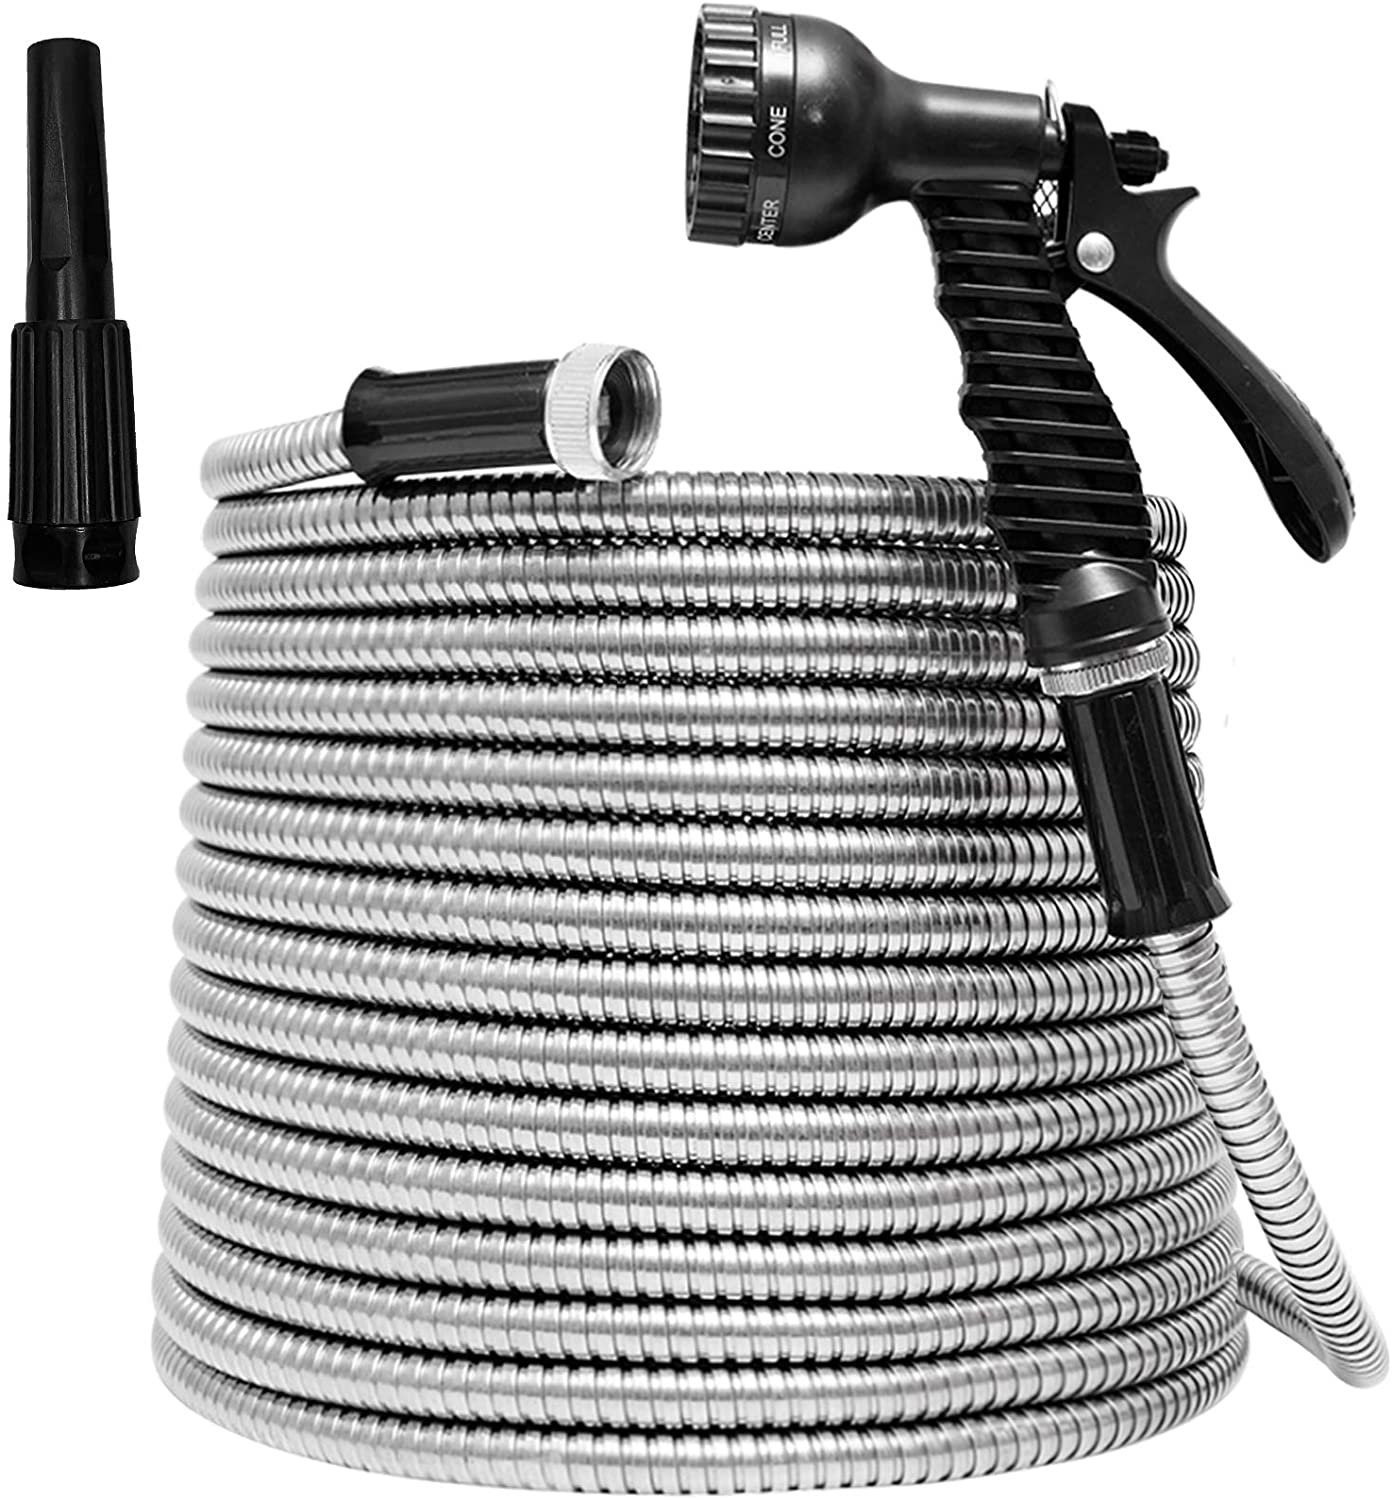 TUNHUI Heavy Duty Flexible Metal Garden Hose Stainless Steel Water Hose with 2 Free Nozzles Metal Hose Flexible Durable Kink Free and Easy to Store Outdoor Hose (25FT)